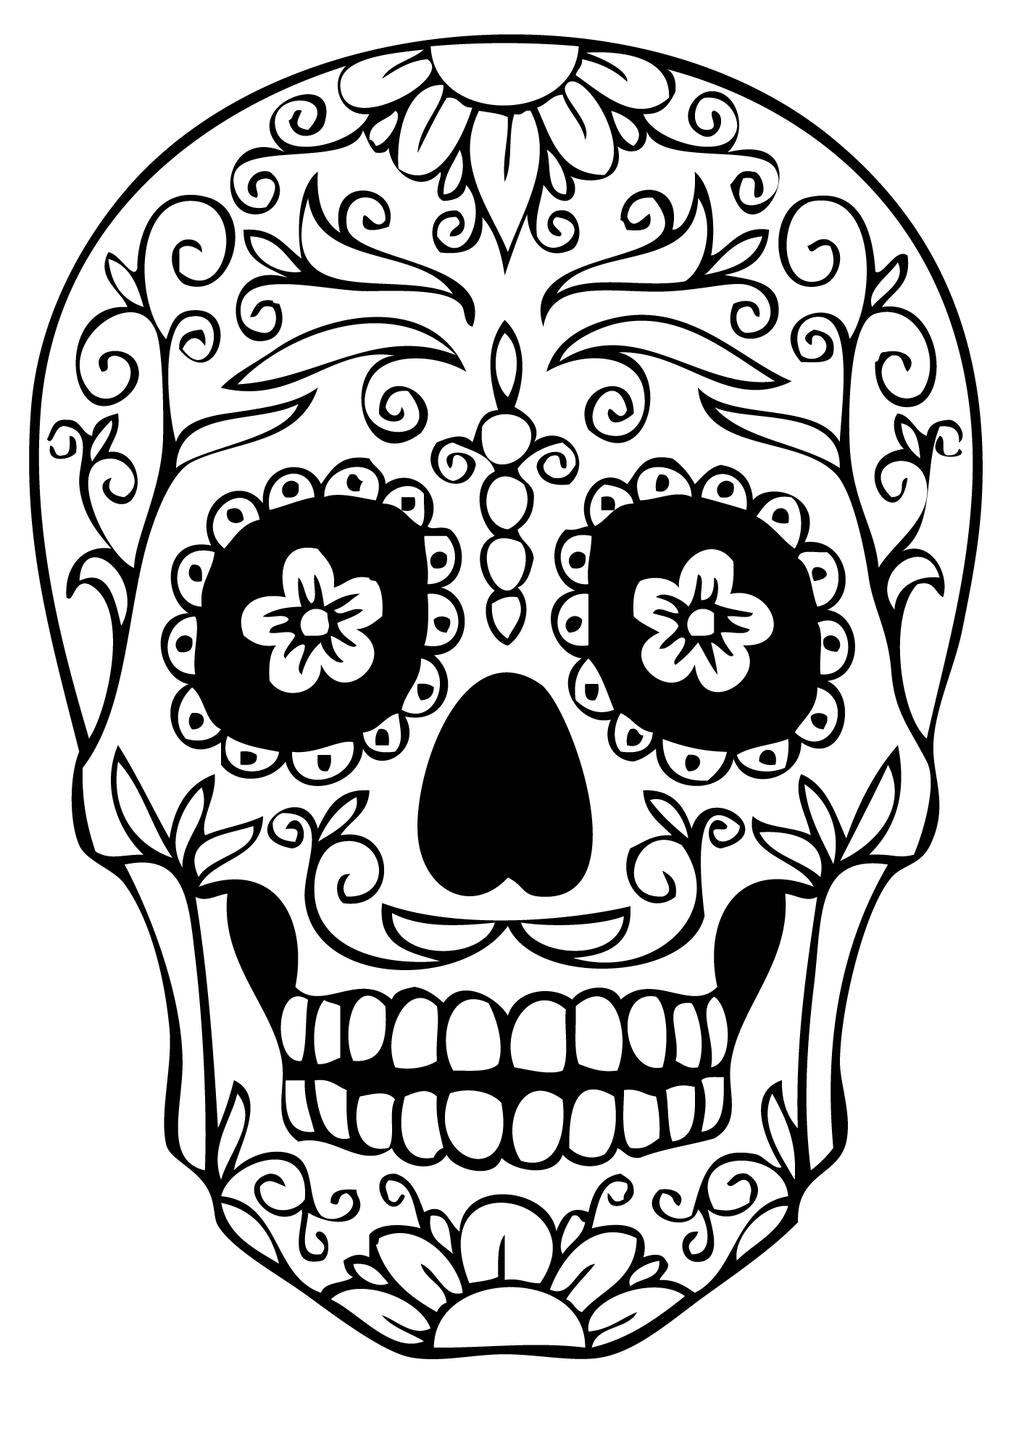 Free Calavera Coloring Pages Skeleton Mask printable